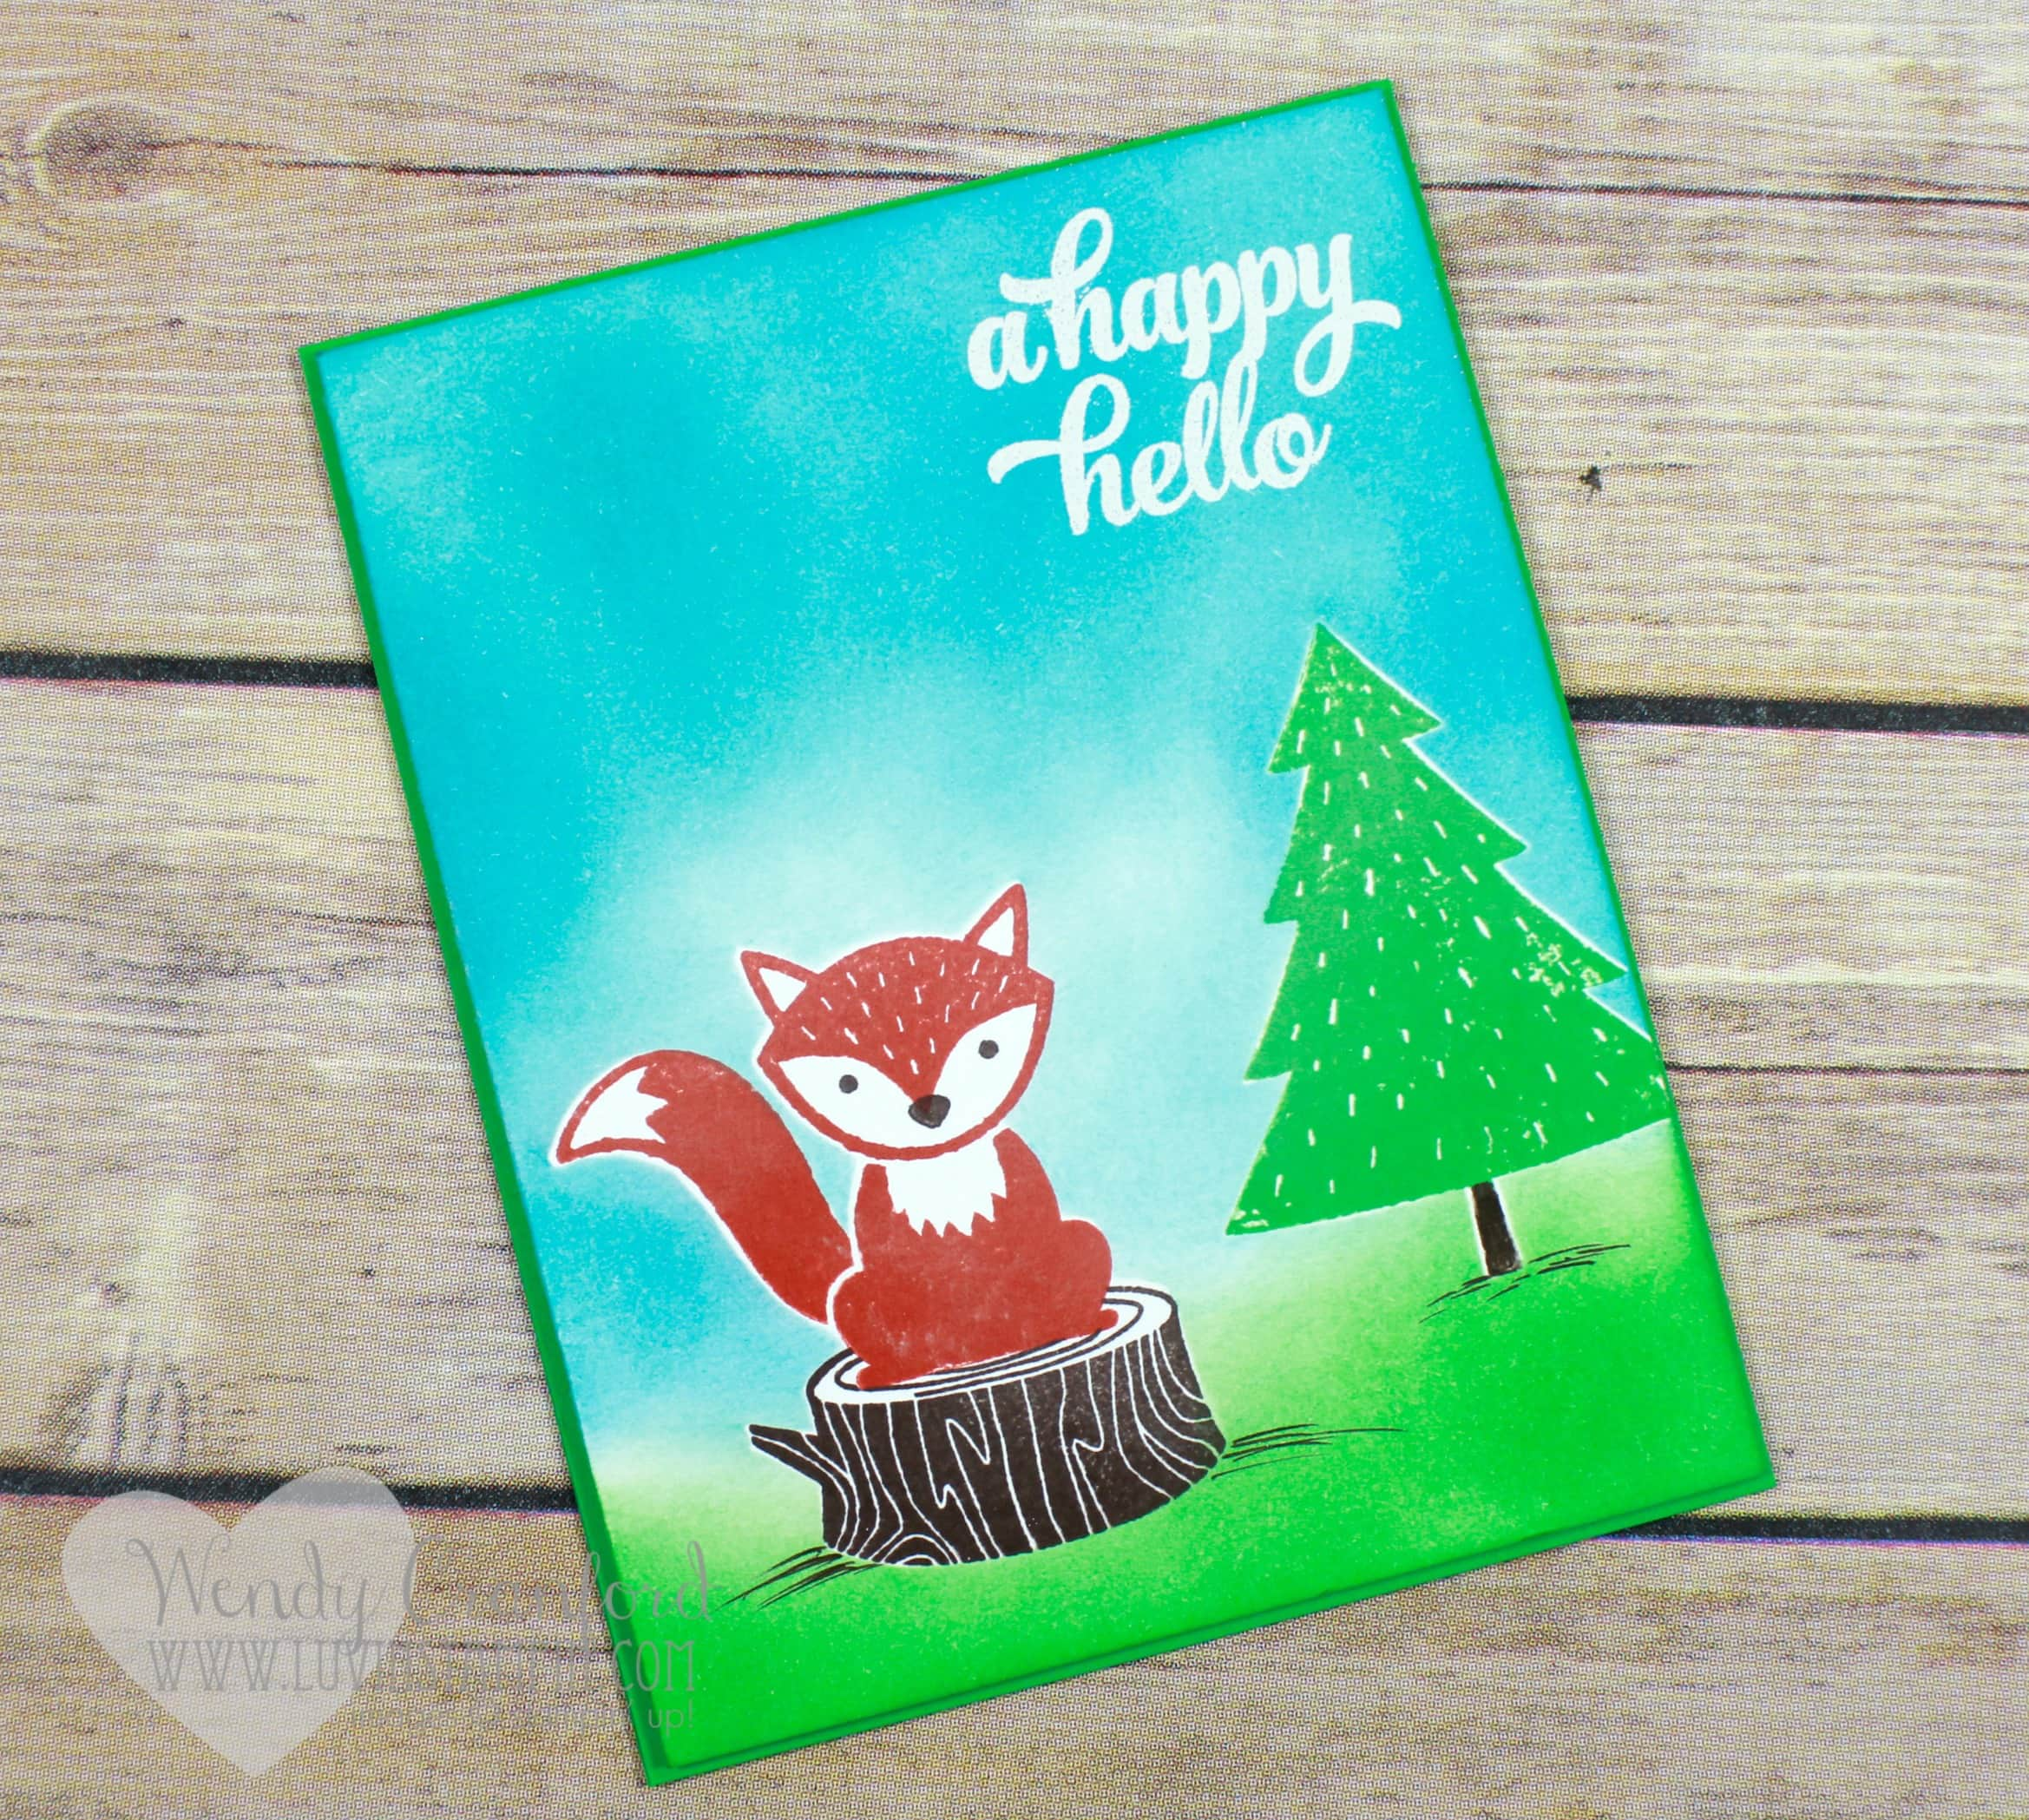 Foxy friends stamp set and A Little Foxy designer series paper pair to make this cute card. Wendy Cranford luvinstampin.com